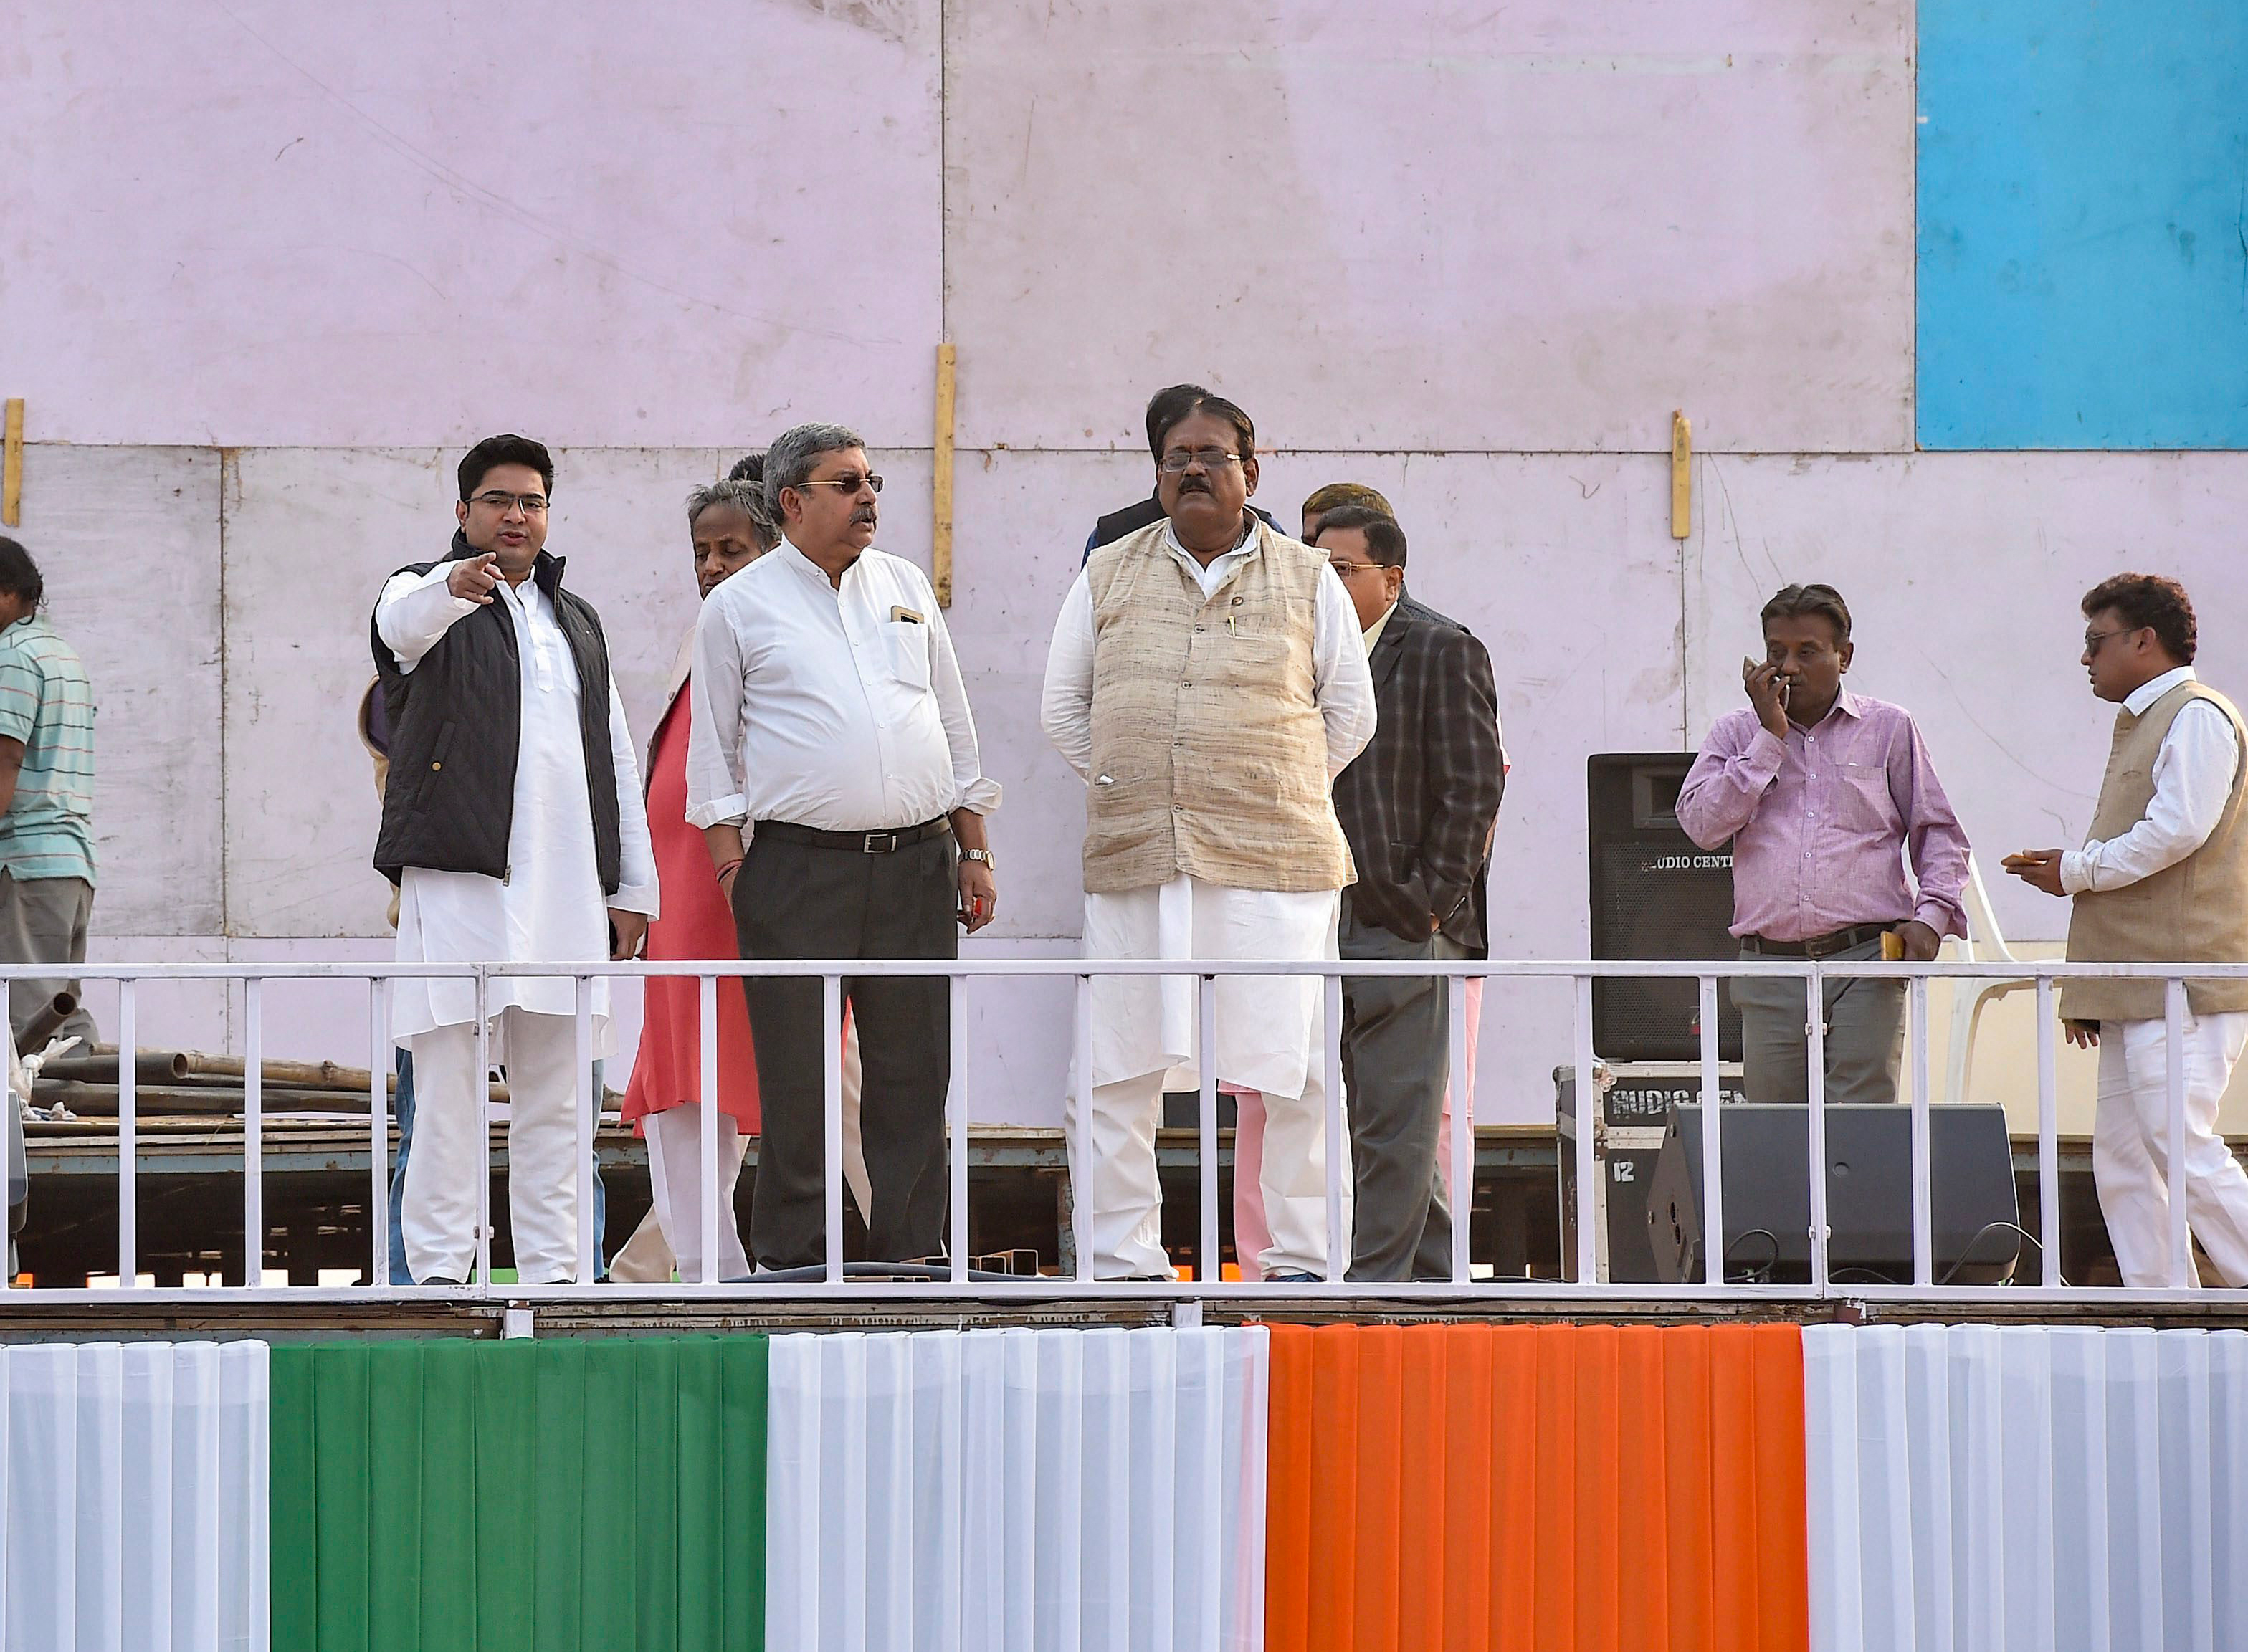 West Bengal Chief Minister Mamata Banerjee's nephew and party MP Abhishek Banerjee (extreme left) inspects the preparation work ahead of TMC's Mega rally, at Brigade Parade Ground in Calcutta on Friday, Jan 18, 2019.